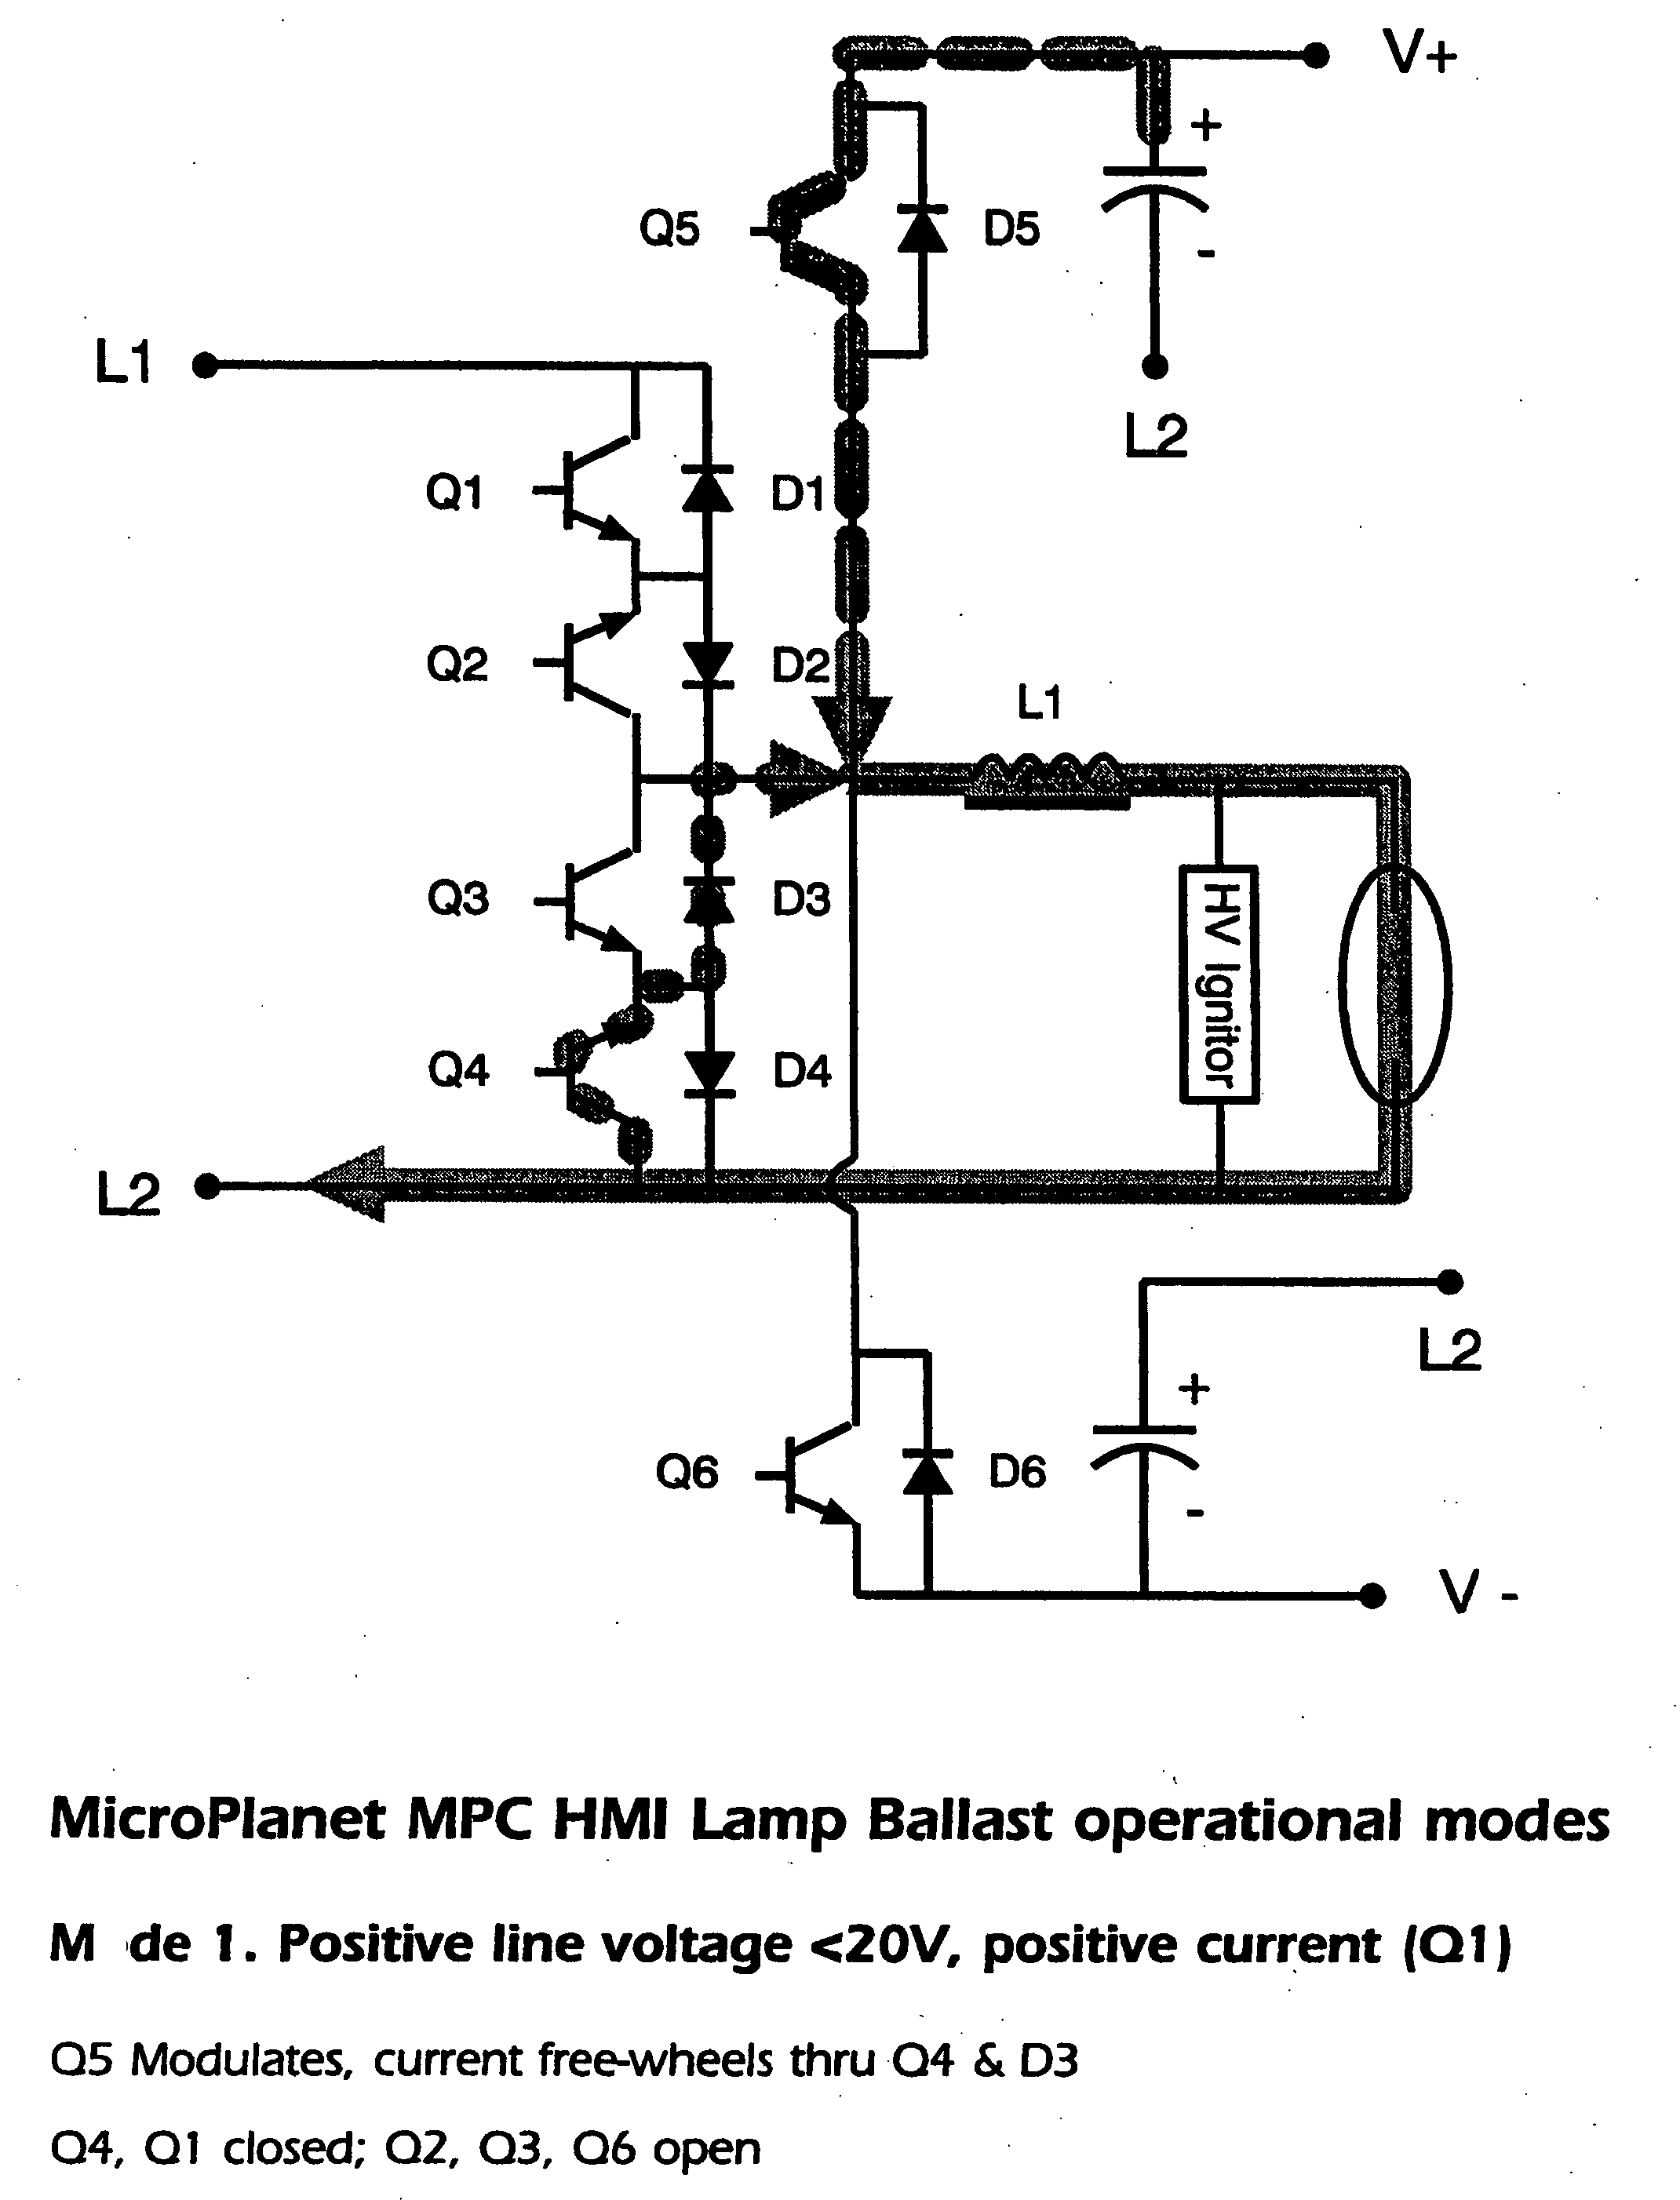 Us20040119448a1 Method And Apparatus For Electronic Power Control Fig 3 The New Acled Circuit Combines Displacement Galvanic Figure 20040624 P00002